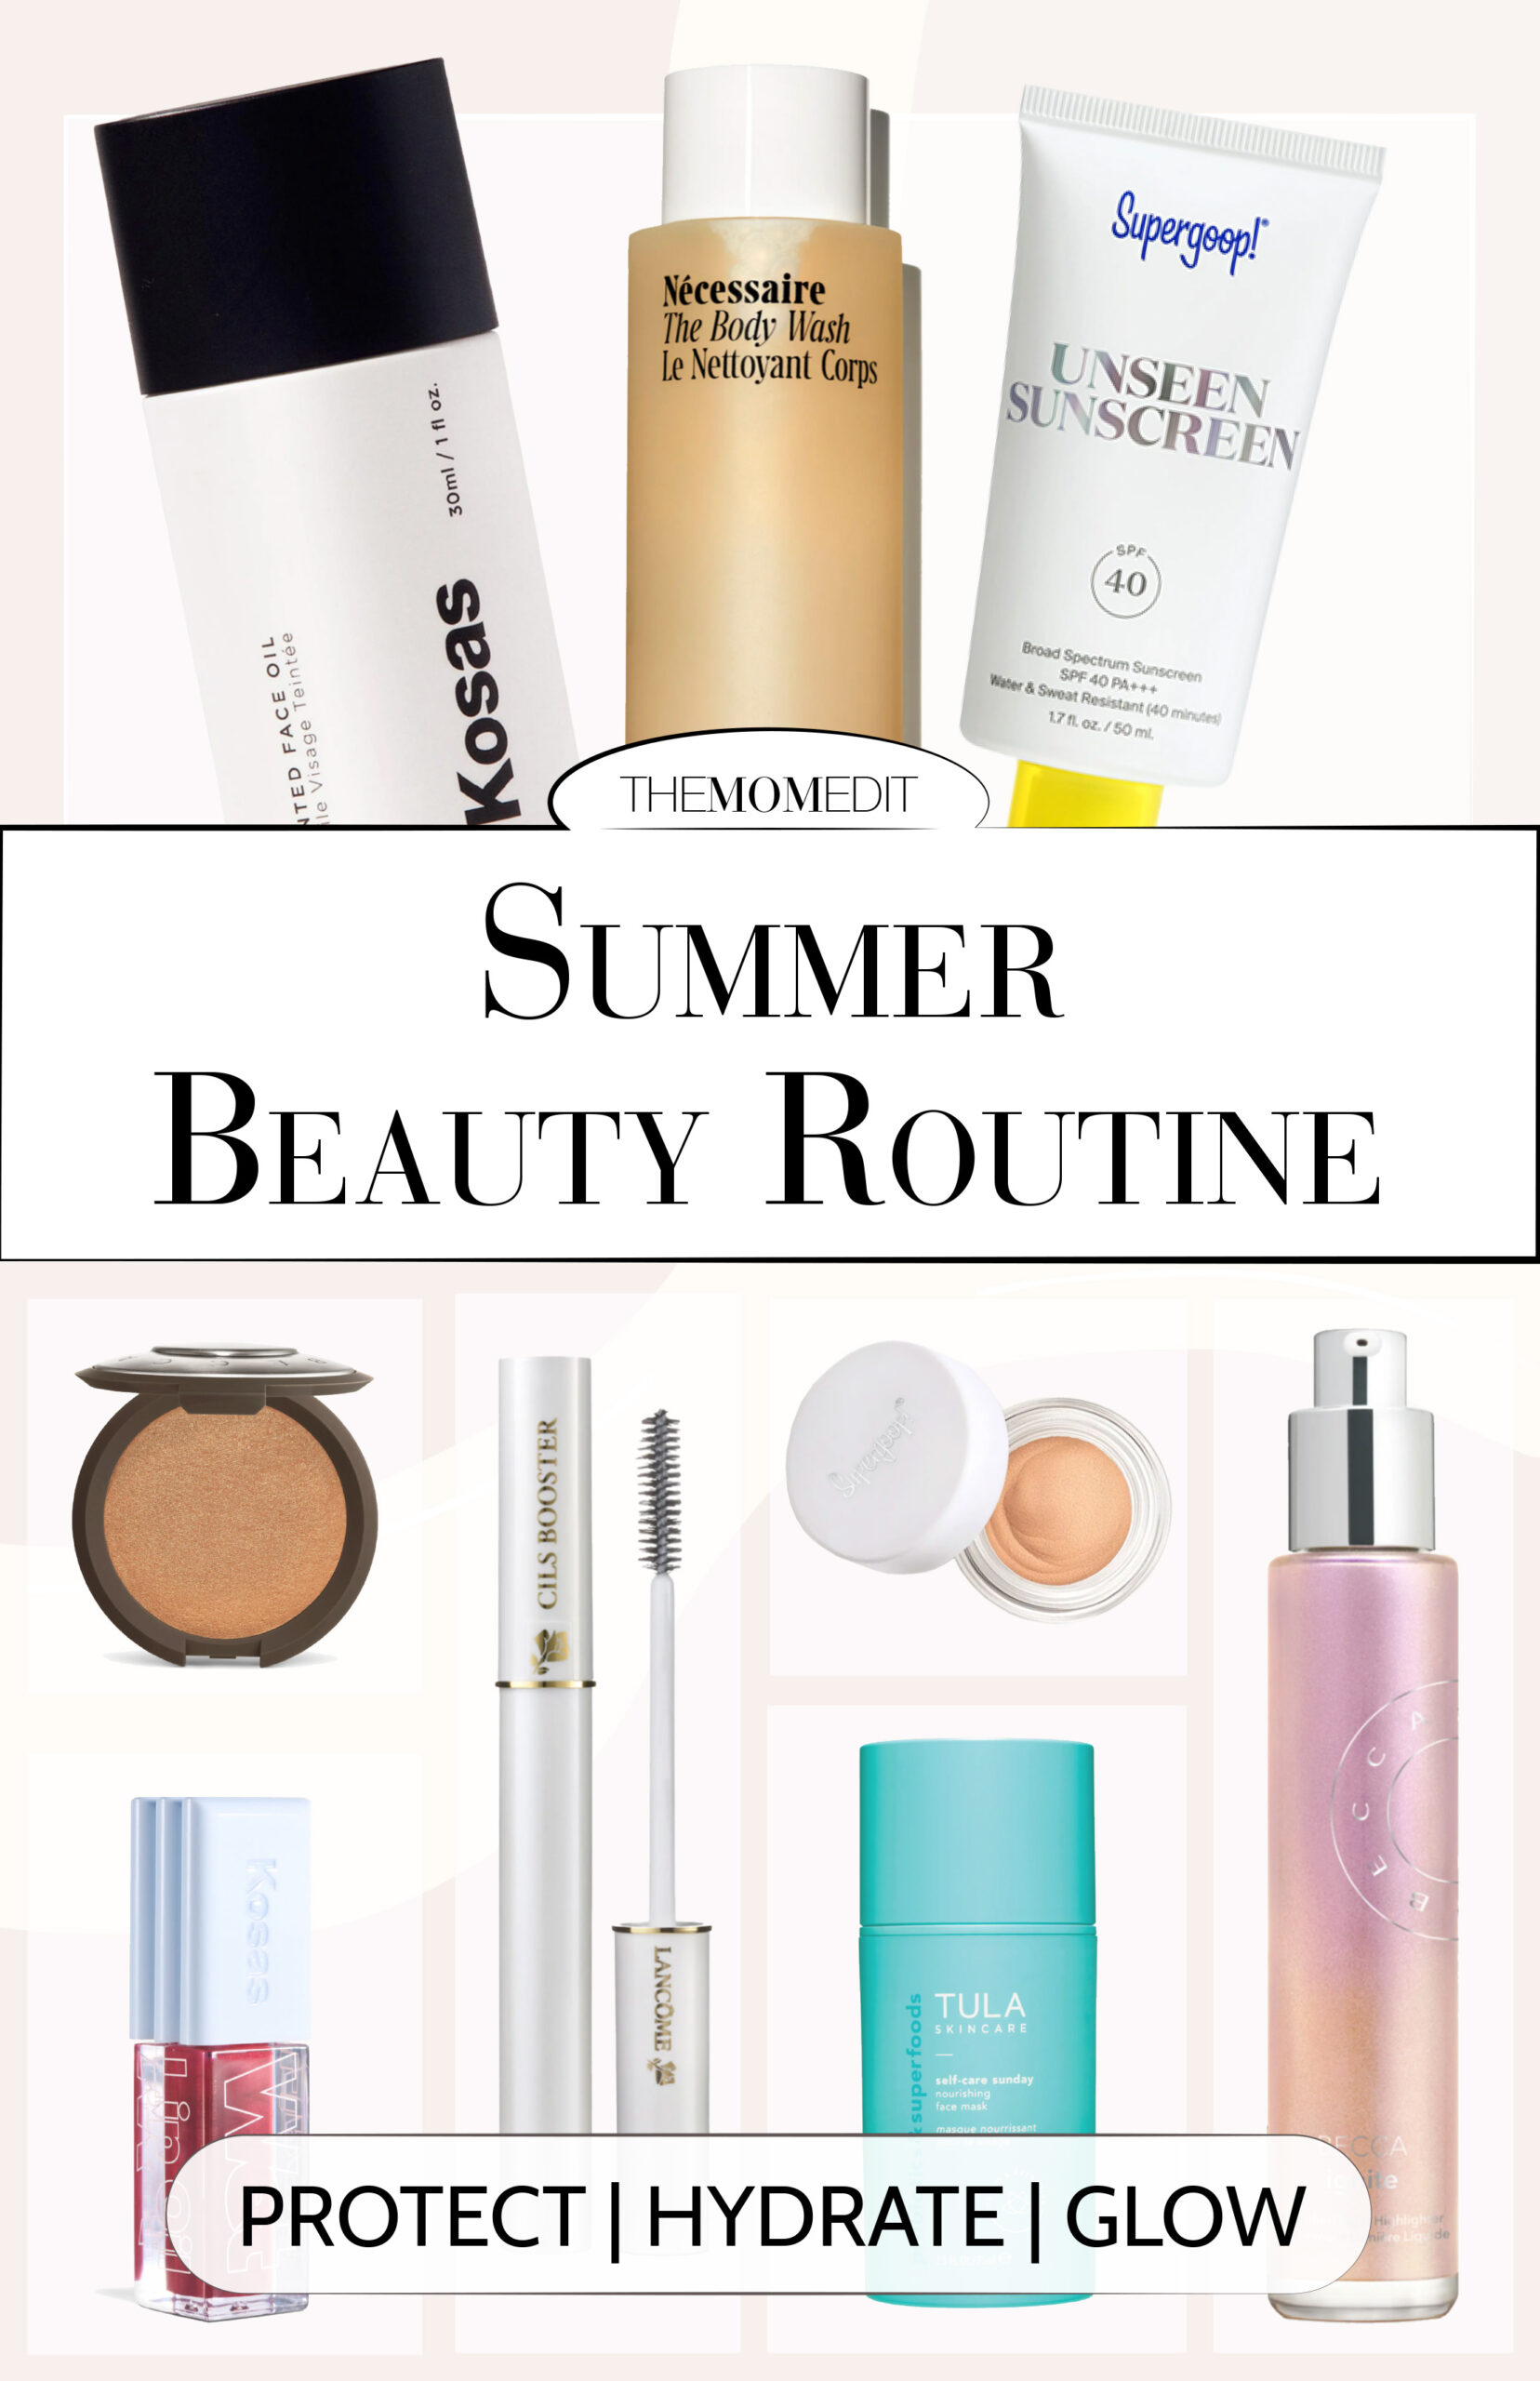 For summer skin & beauty essentials, we like 'em hydrating, glowing & loaded with SPF. These foolproof beauty products keep skin healthy -- + glowing -- all season long.